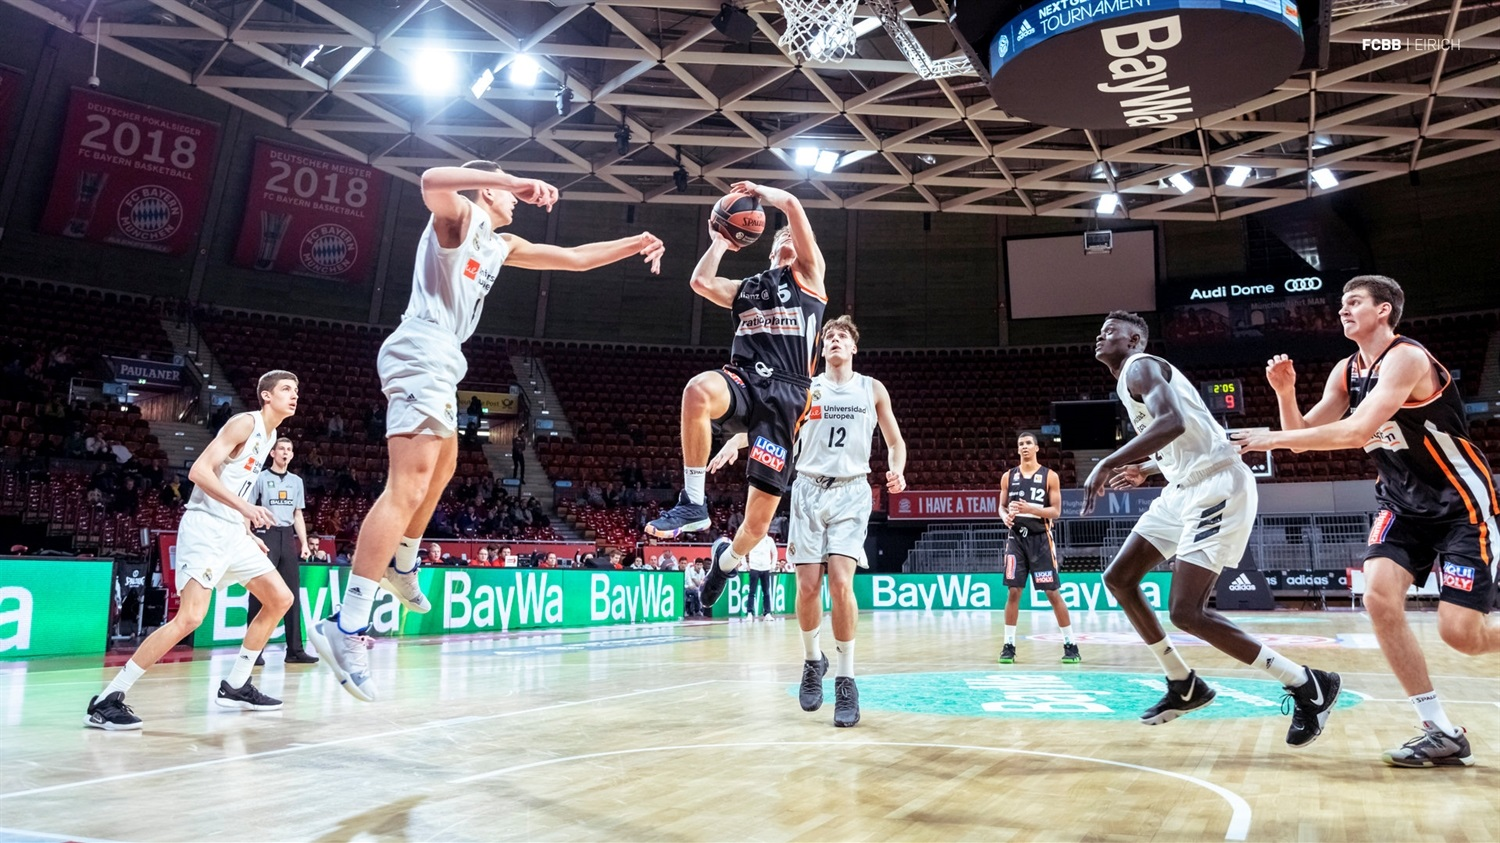 Zachary Ensminger - U18 ratiopharm Ulm - ANGT Munich 2019 (photo FCBB - Eirich) JT18